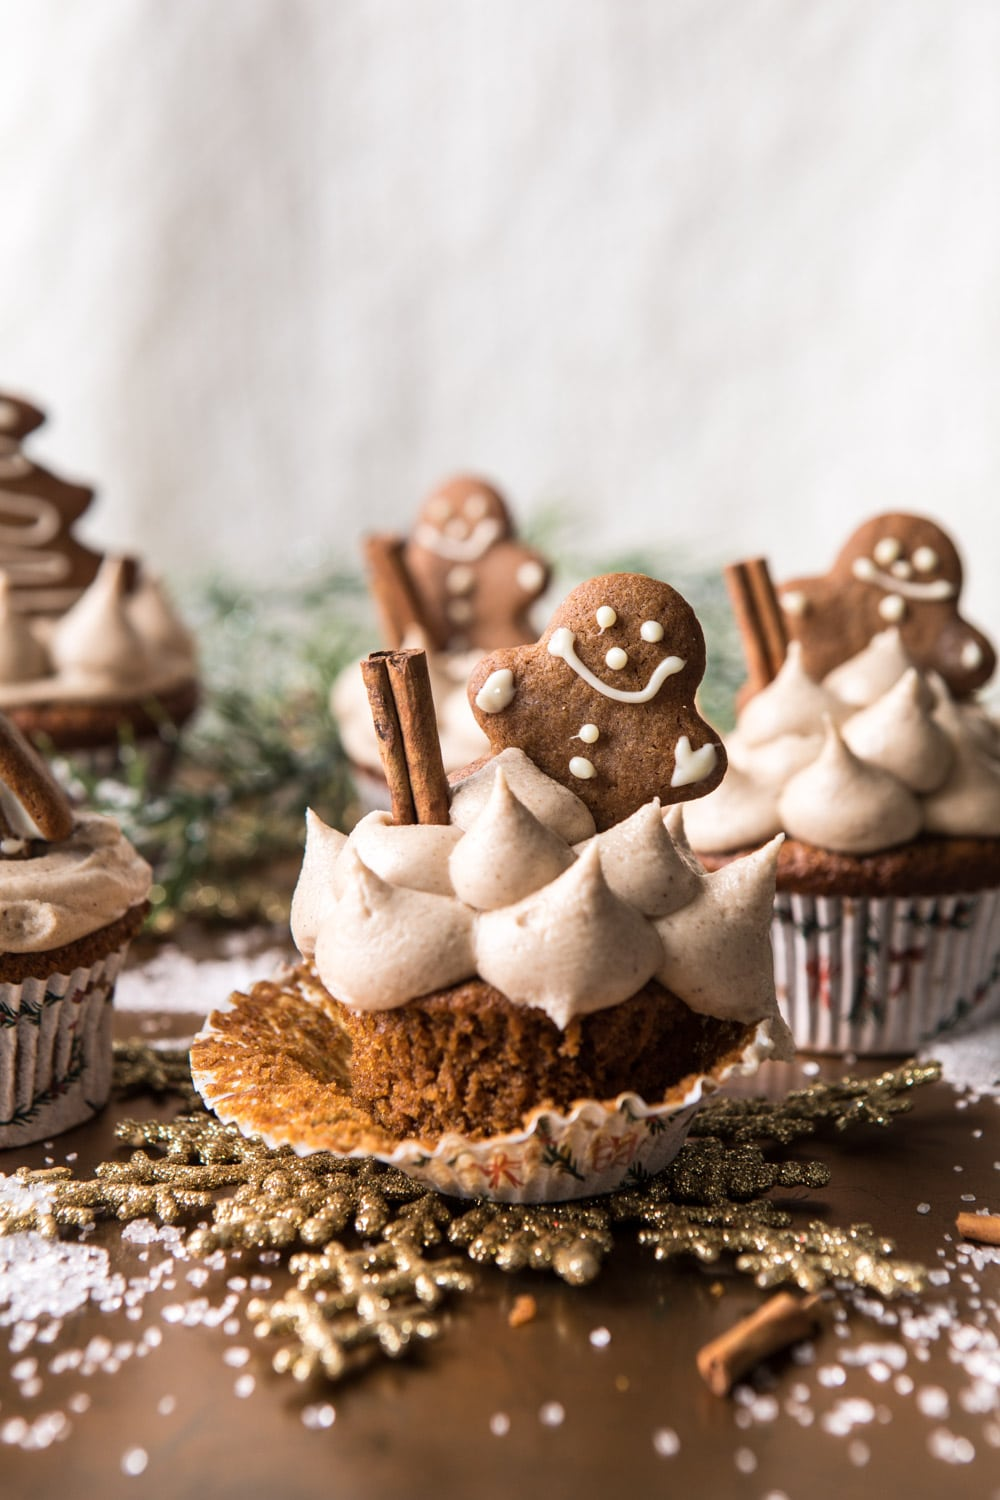 Best Christmas desserts: Gingerbread Cupcakes With Cinnamon & Buttercream